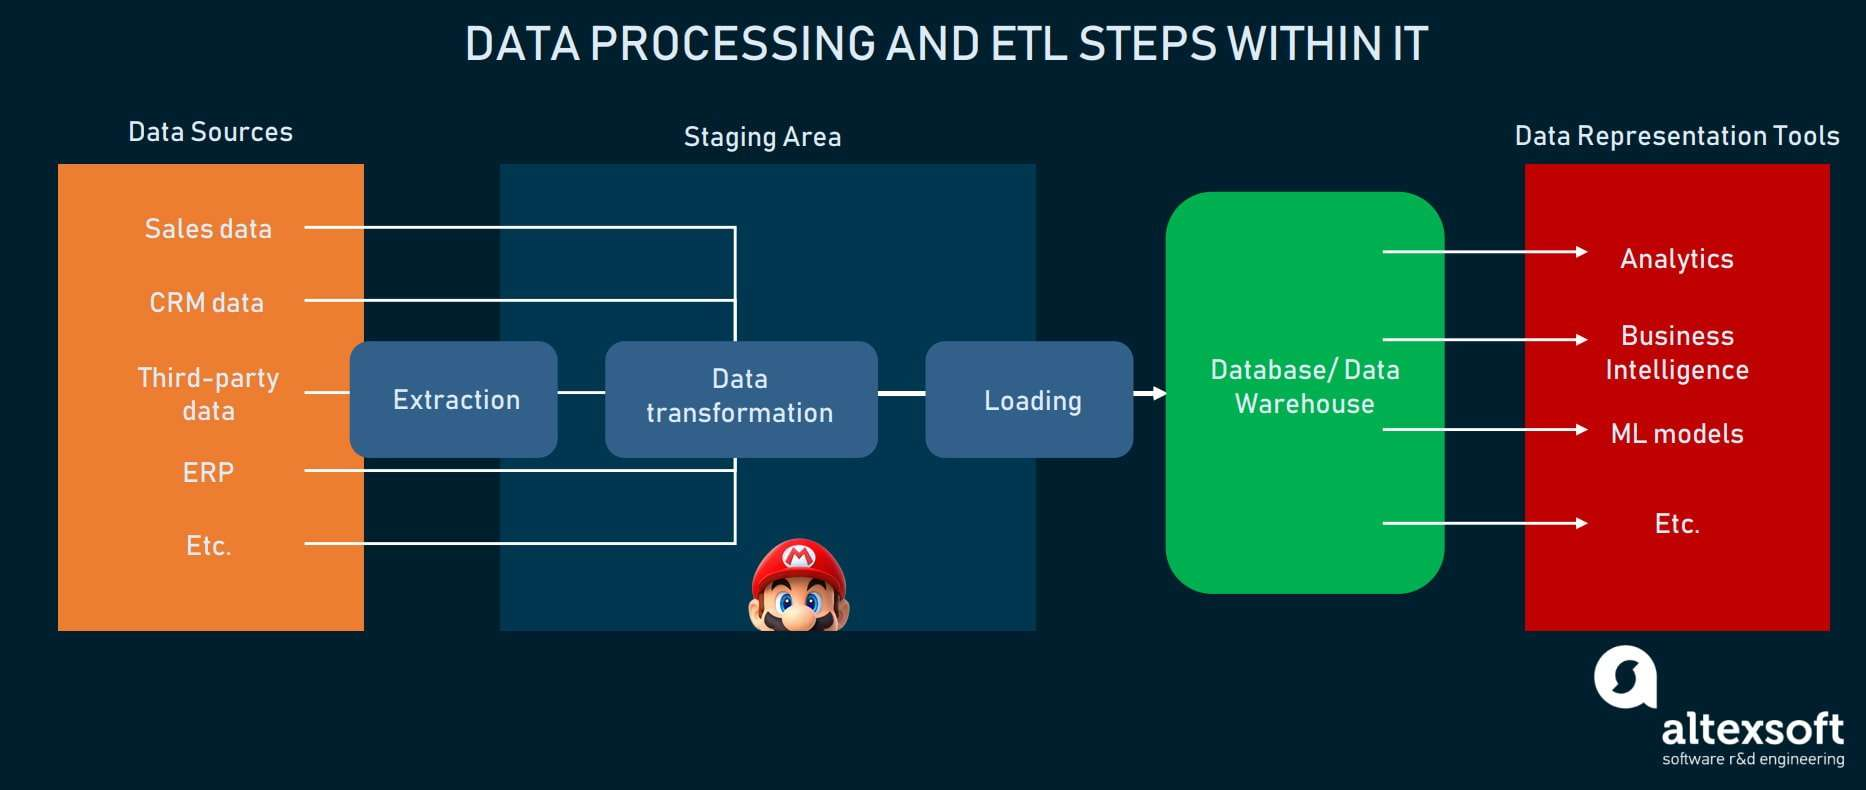 Data processing and ETL steps within it scheme